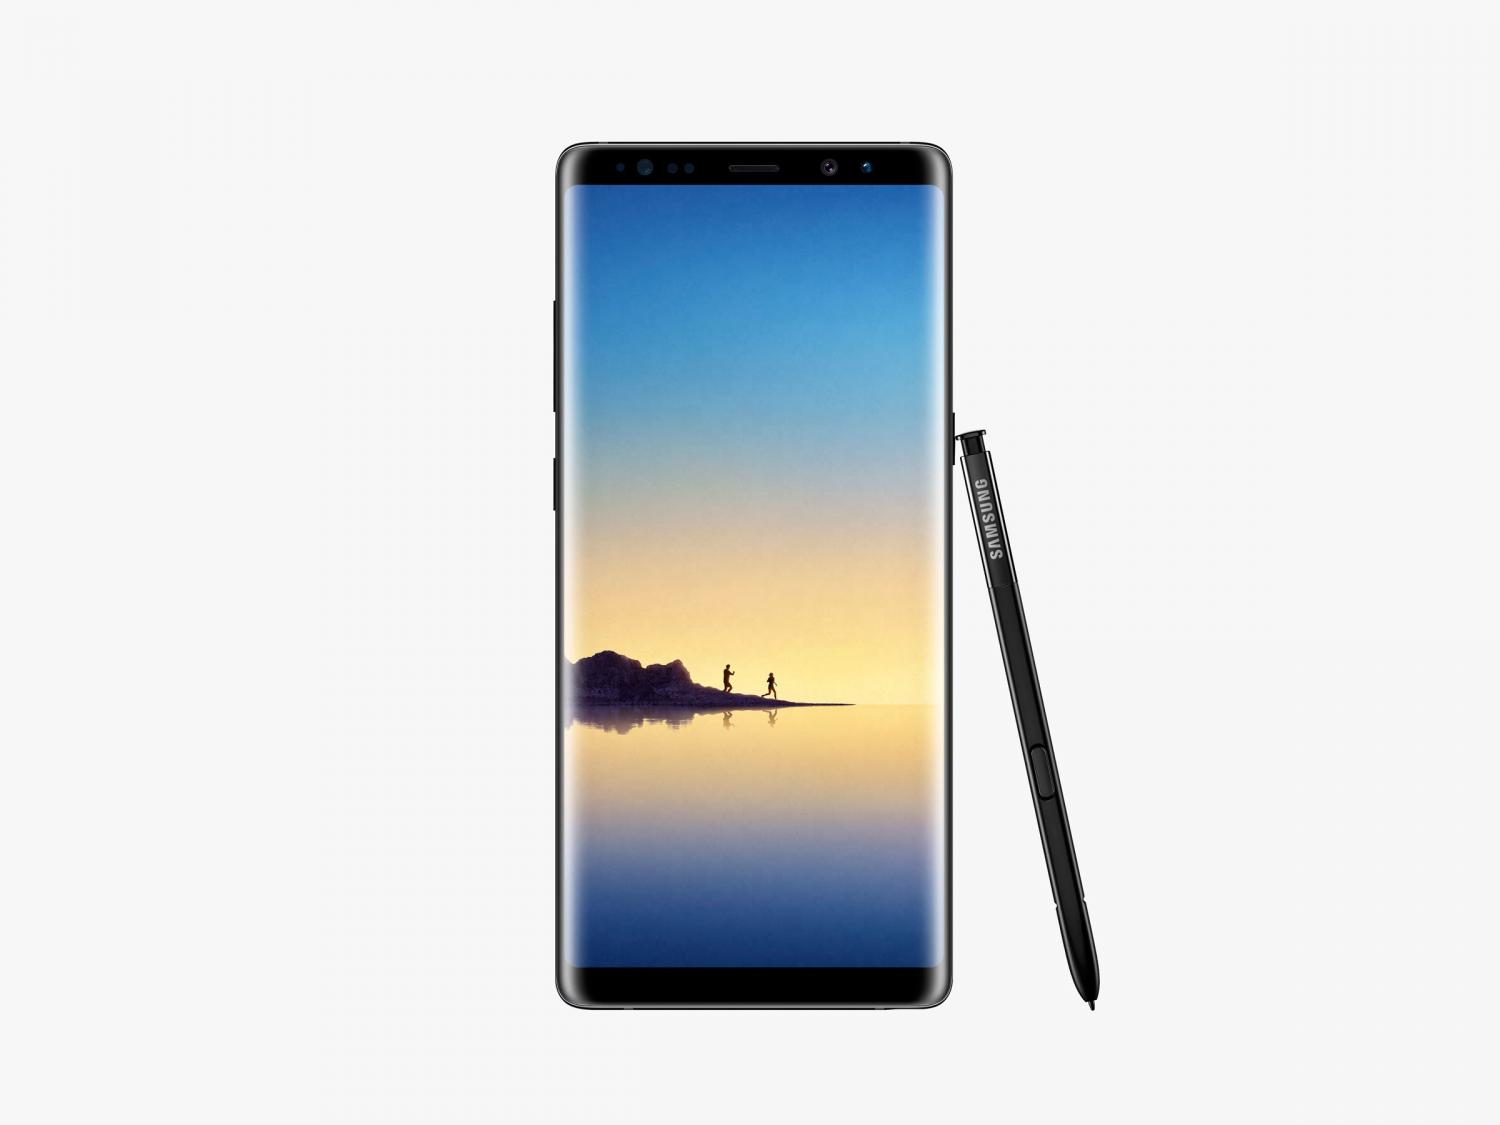 Samsung Galaxy Note8 available from mid-September